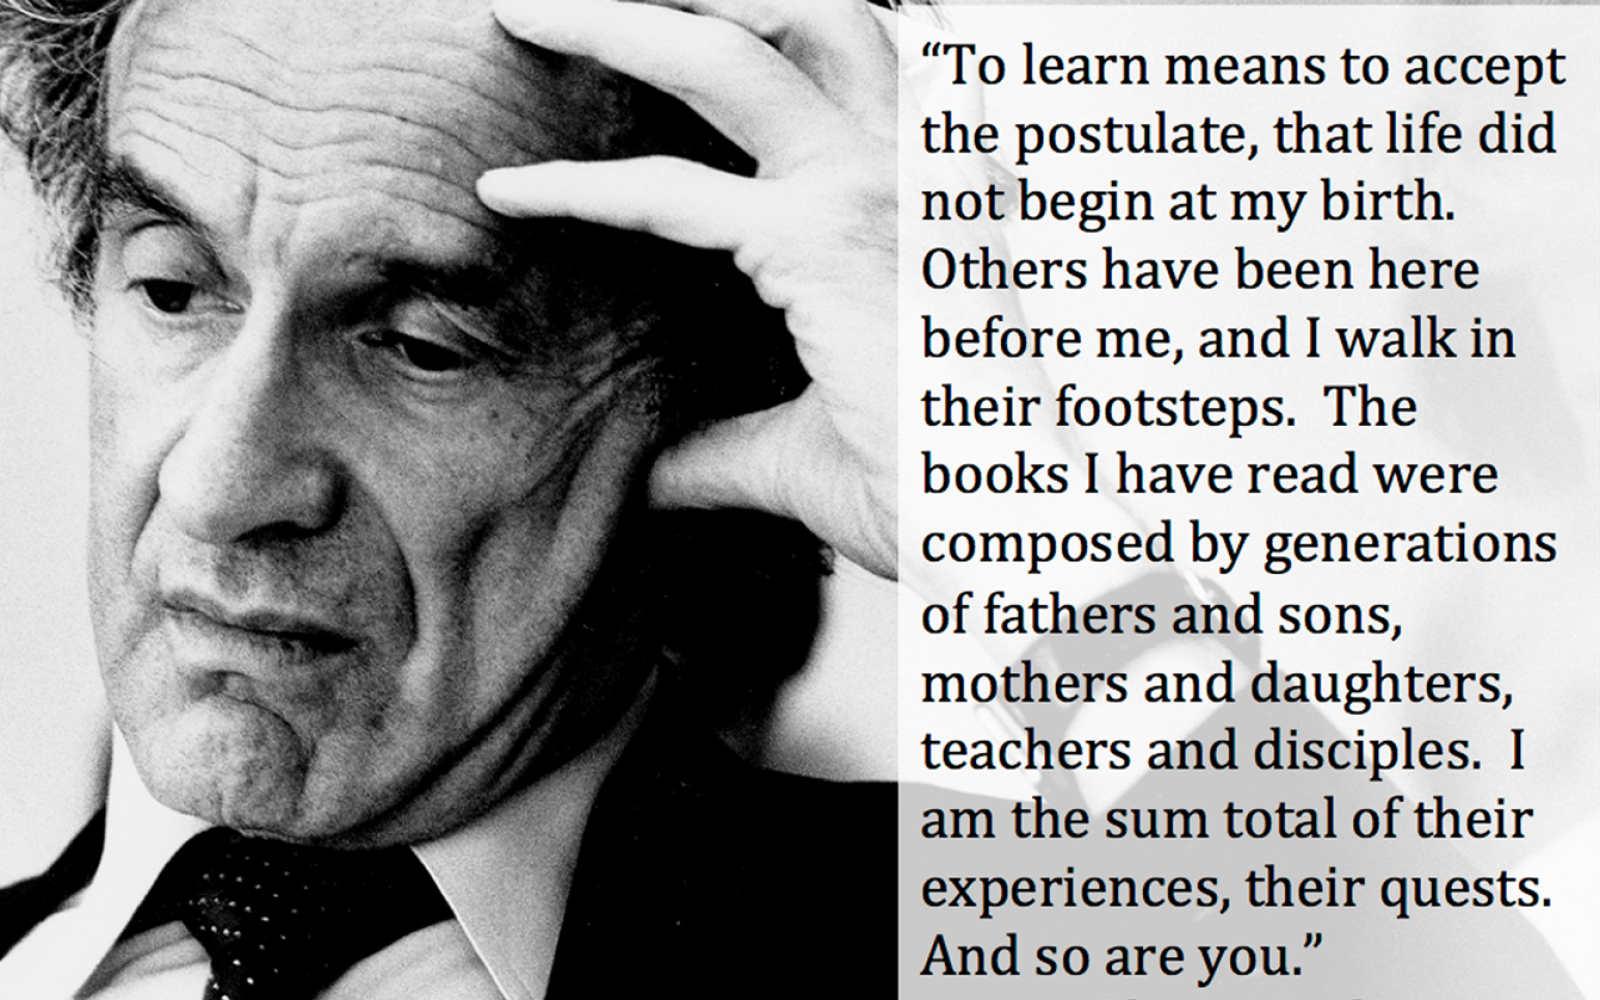 26 Most Profound Elie Wiesel Quotes That Paint A Picture Of How We All Should Live Our Lives